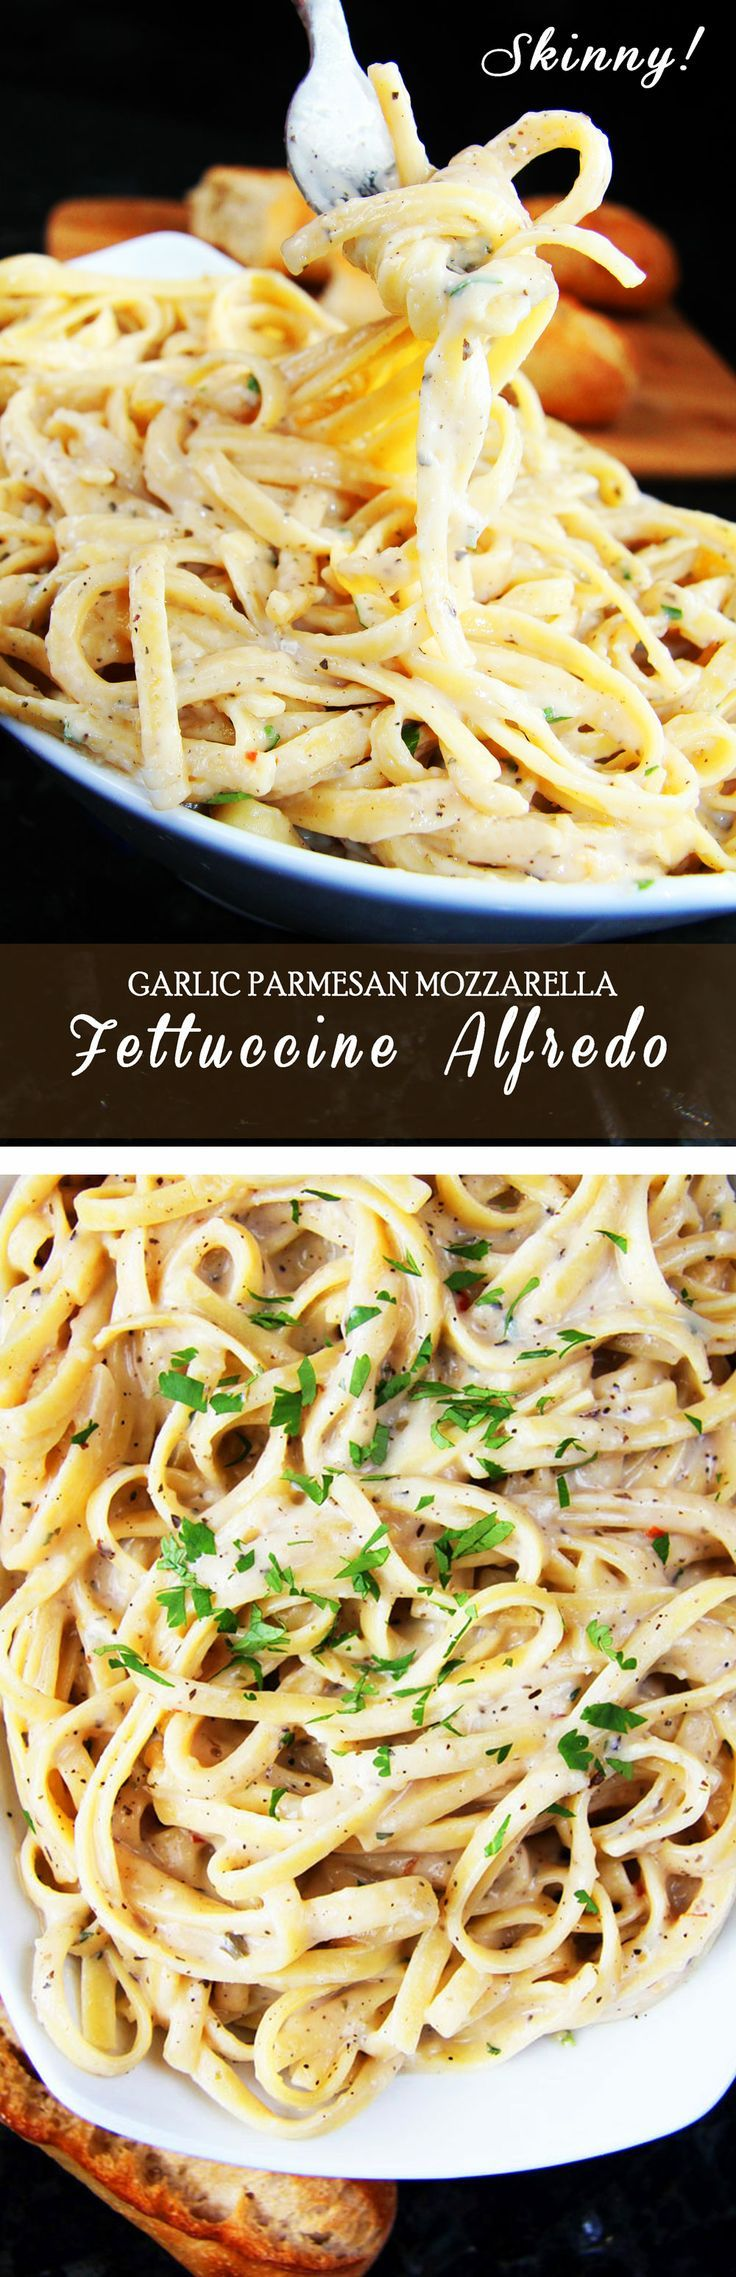 SKINNY Garlic Parmesan Mozzarella Alfredo. Rich and creamy without any butter, heavy cream or cream cheese!!! The pairing of both Parmesan cheese and mozzarella cheese adds a depth of flavor while complimented by garlic, basil, parsley and red pepper flakes.   Carlsbad Cravings